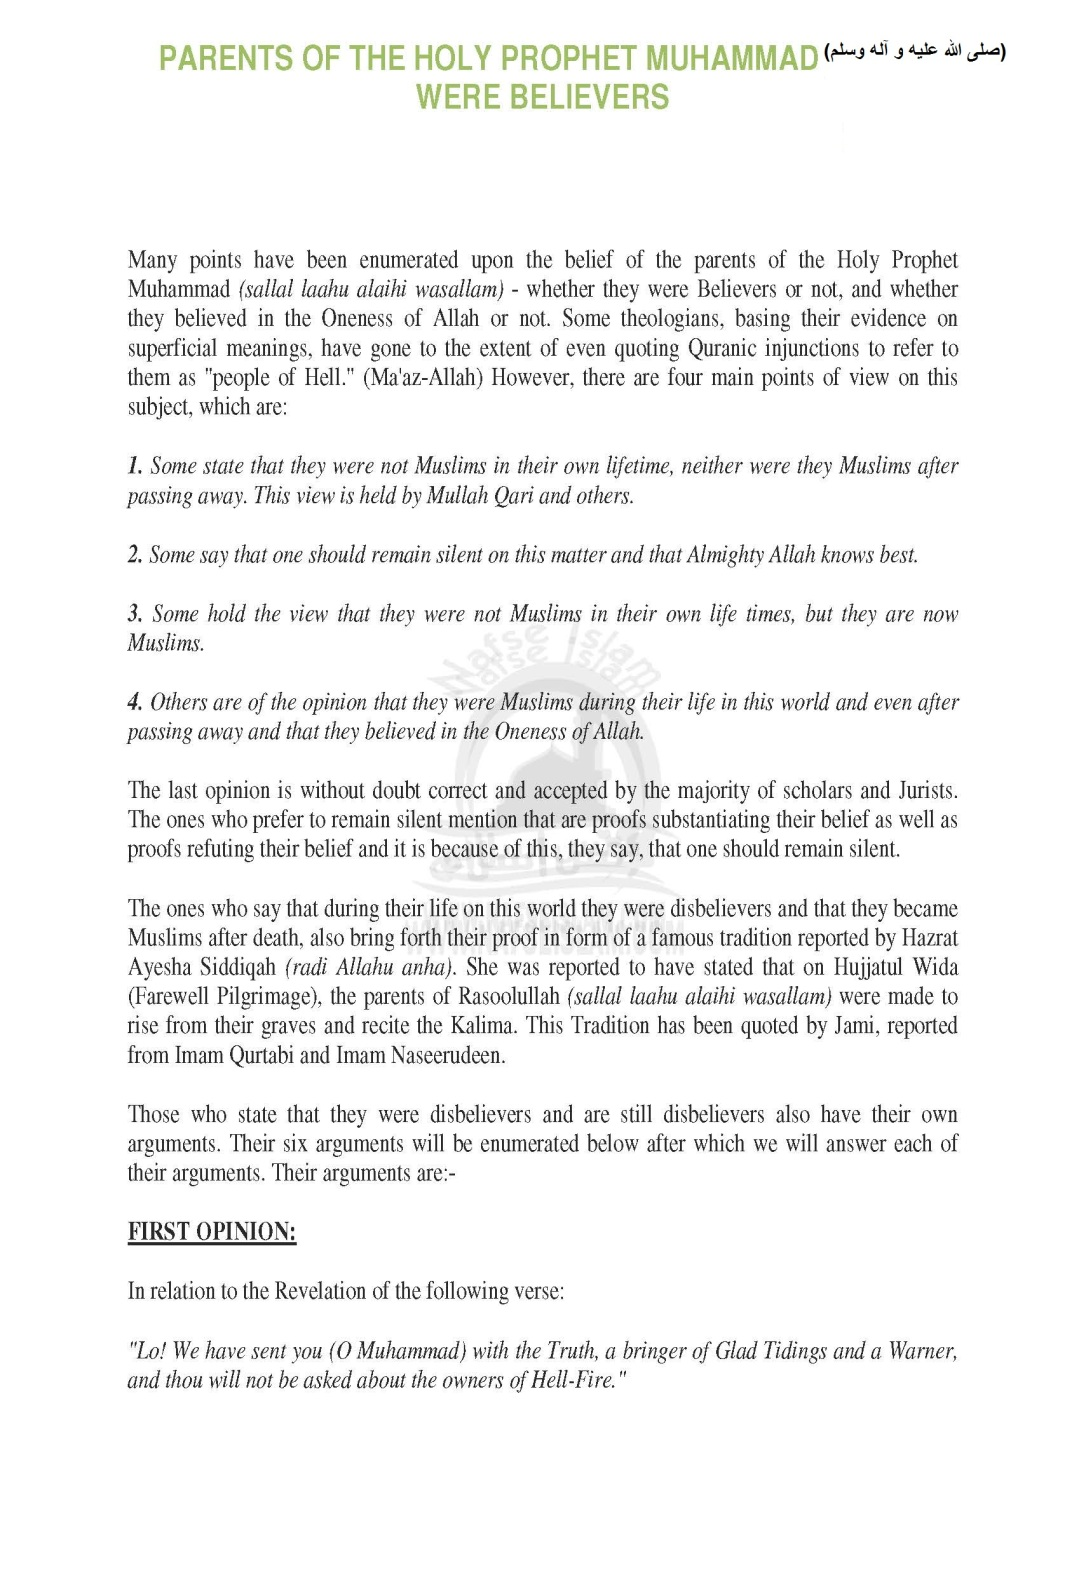 ParentsofHolyProphet_Page_01